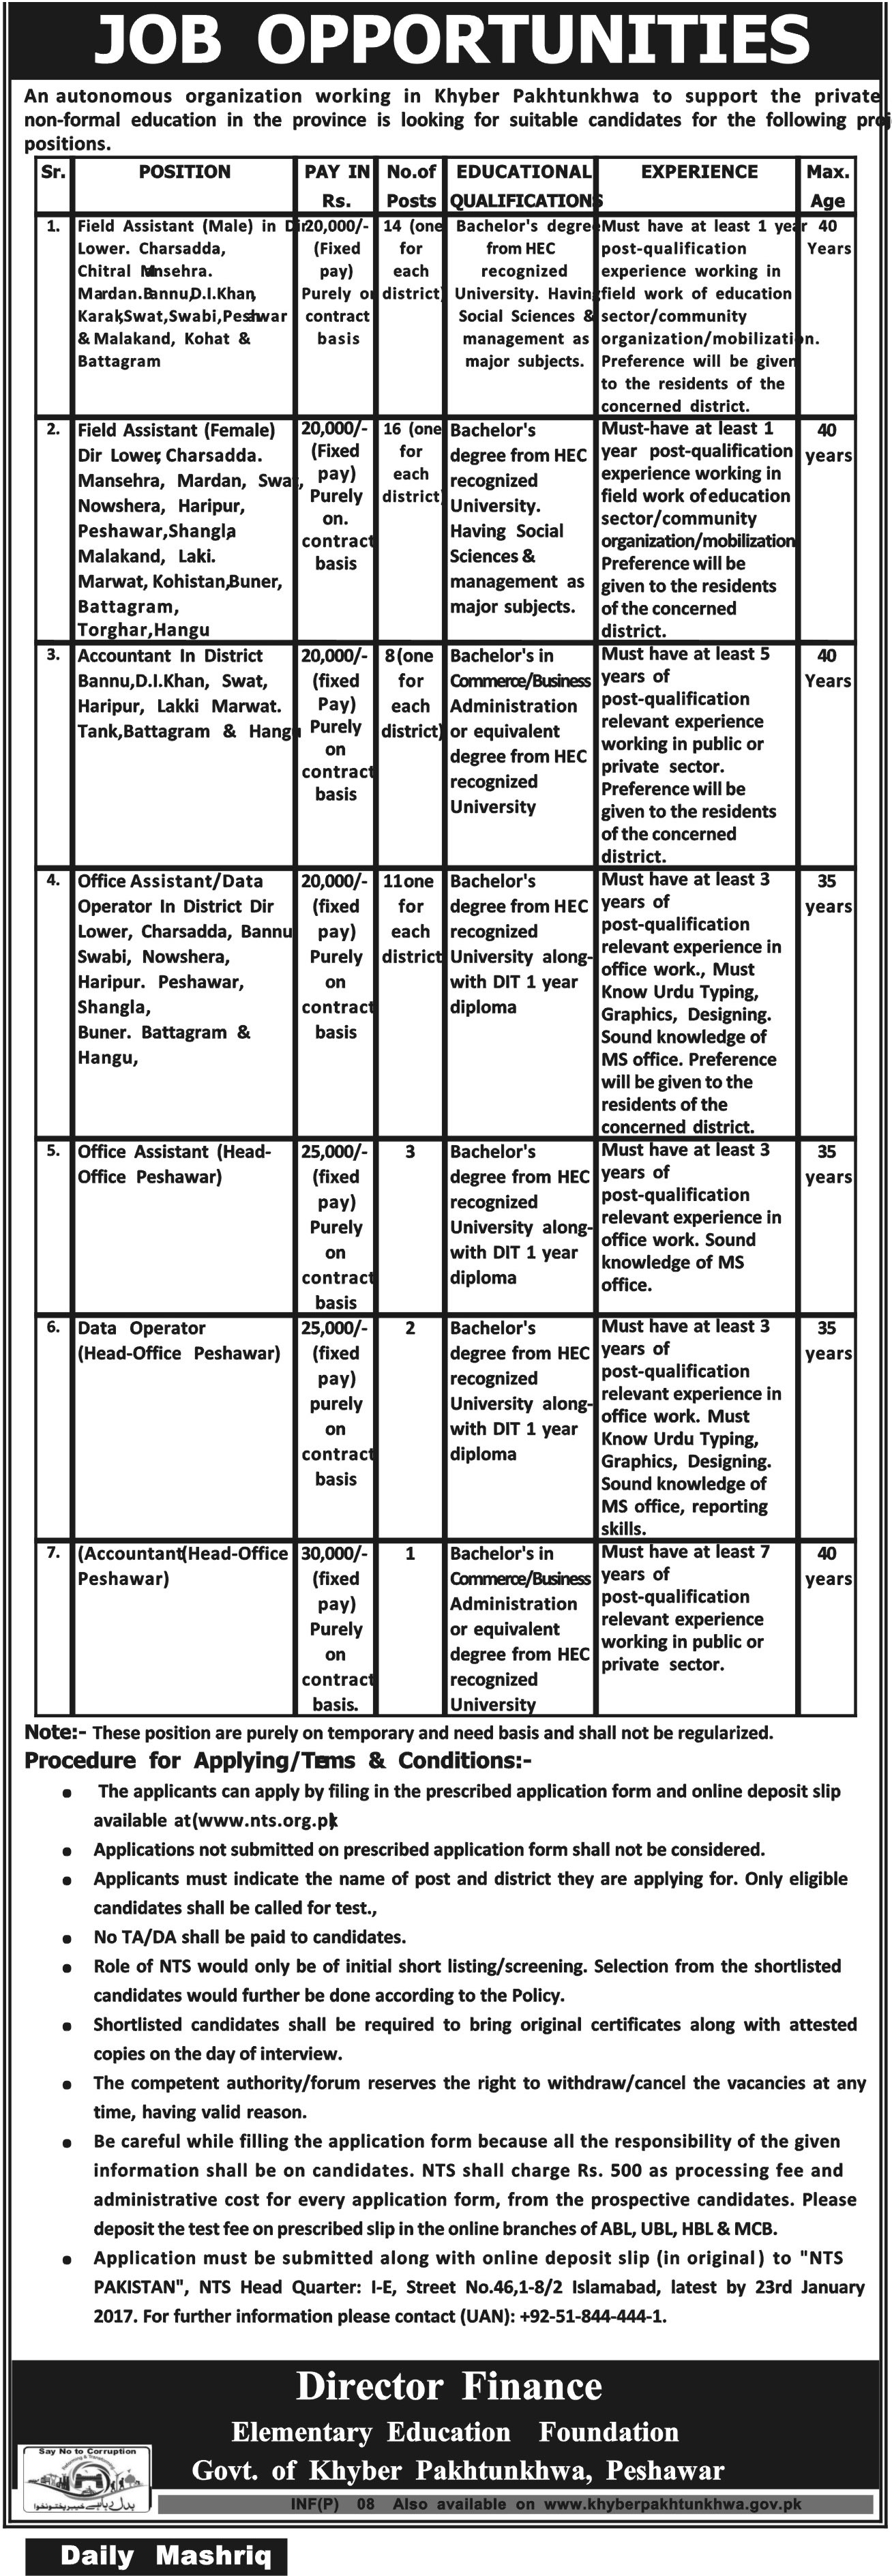 Elementary Education Foundation KPK Jobs 2017 NTS Application Form Eligibility Criteria